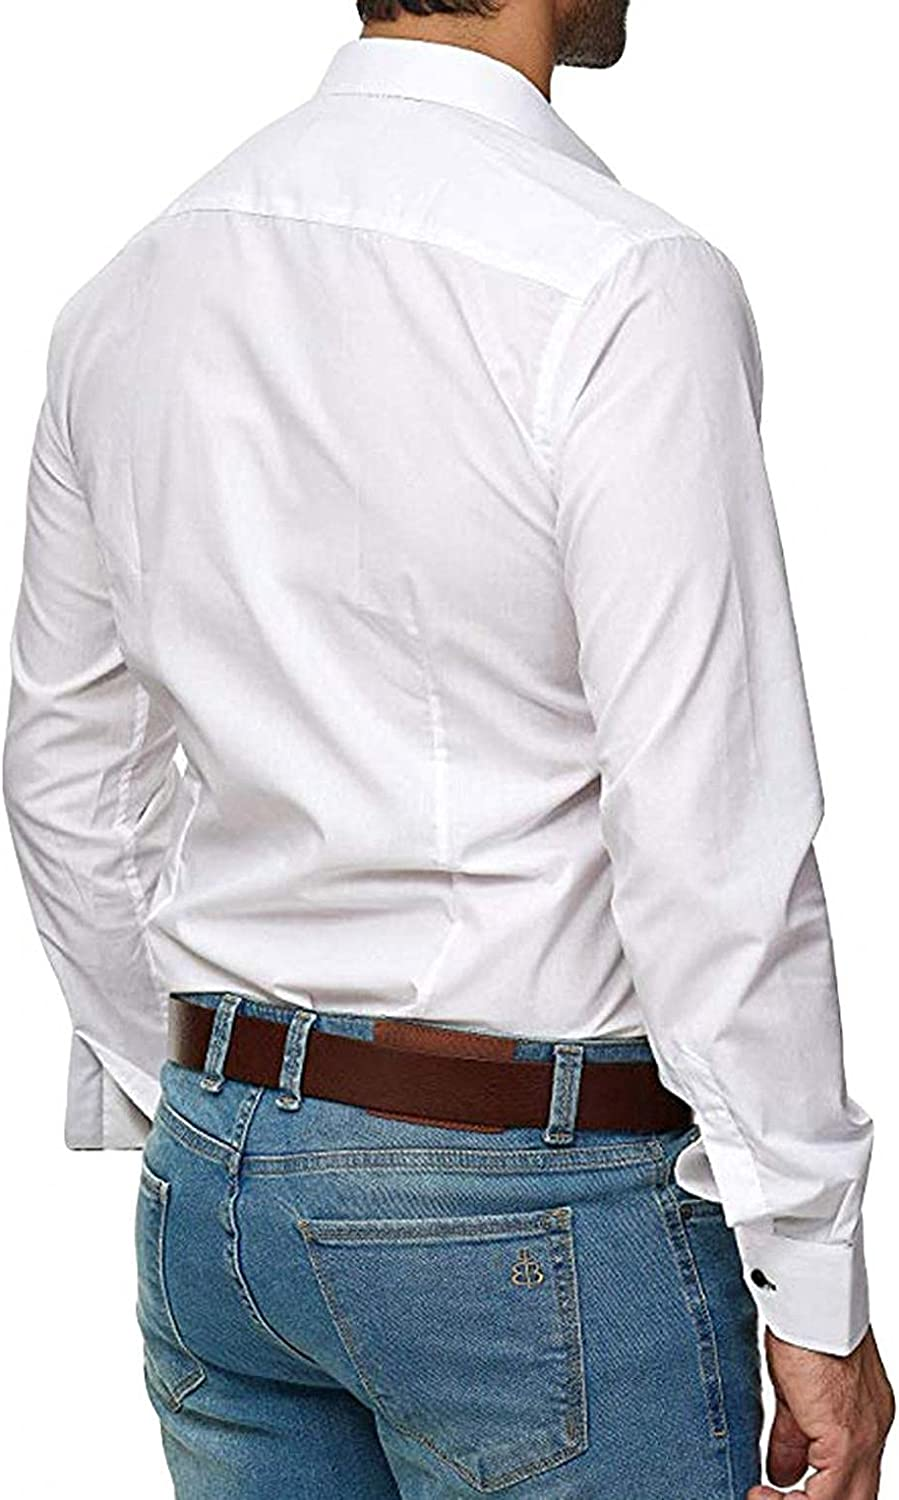 KEEYO Mens Casual Dress Shirts Long Sleeve Muscle Fit Business Work Wrinkle-Free Button Down Cotton Plain Shirts Tops